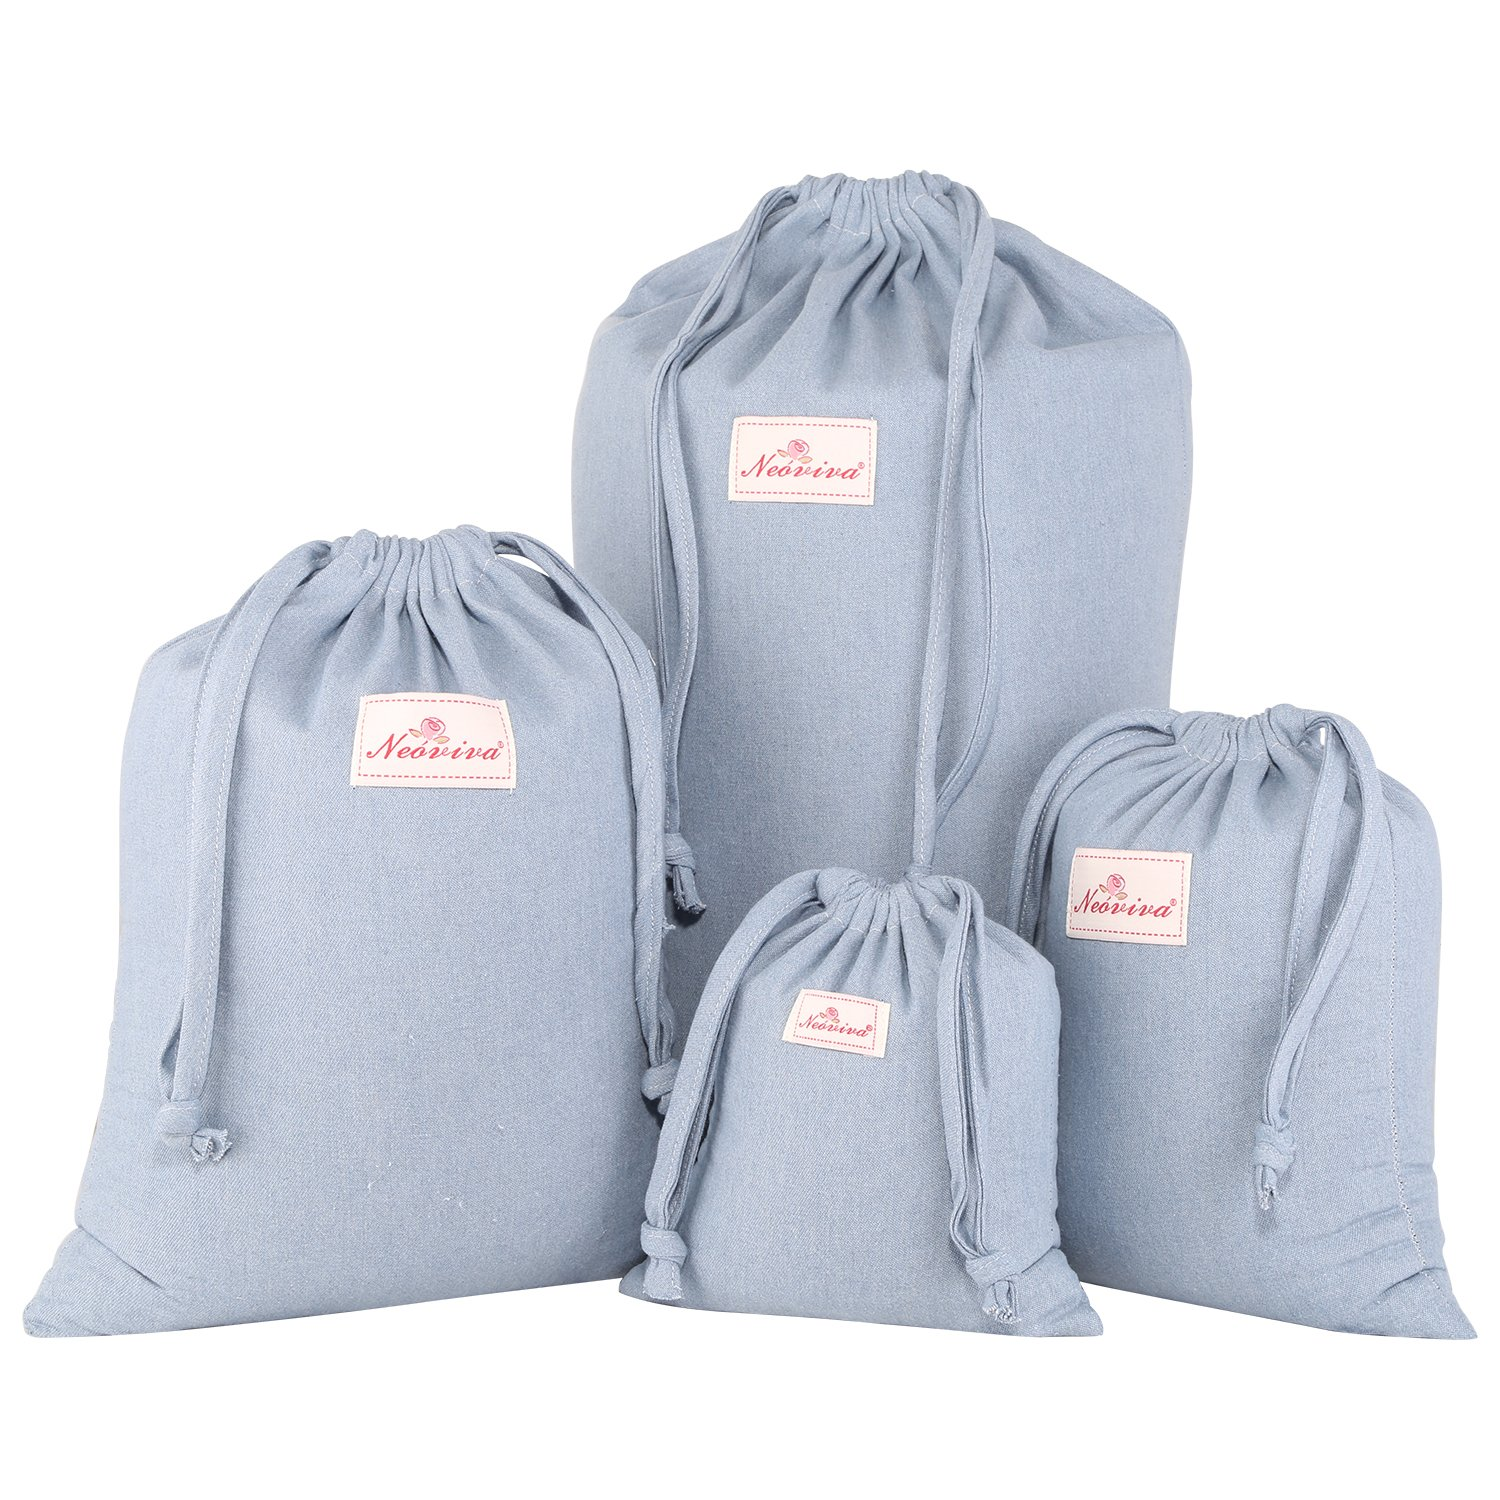 Neoviva Cotton Denim Drawstring Storage Bags for Home and Travel Organization, Set of 4 in Different Sizes, Solid Skyway Blue